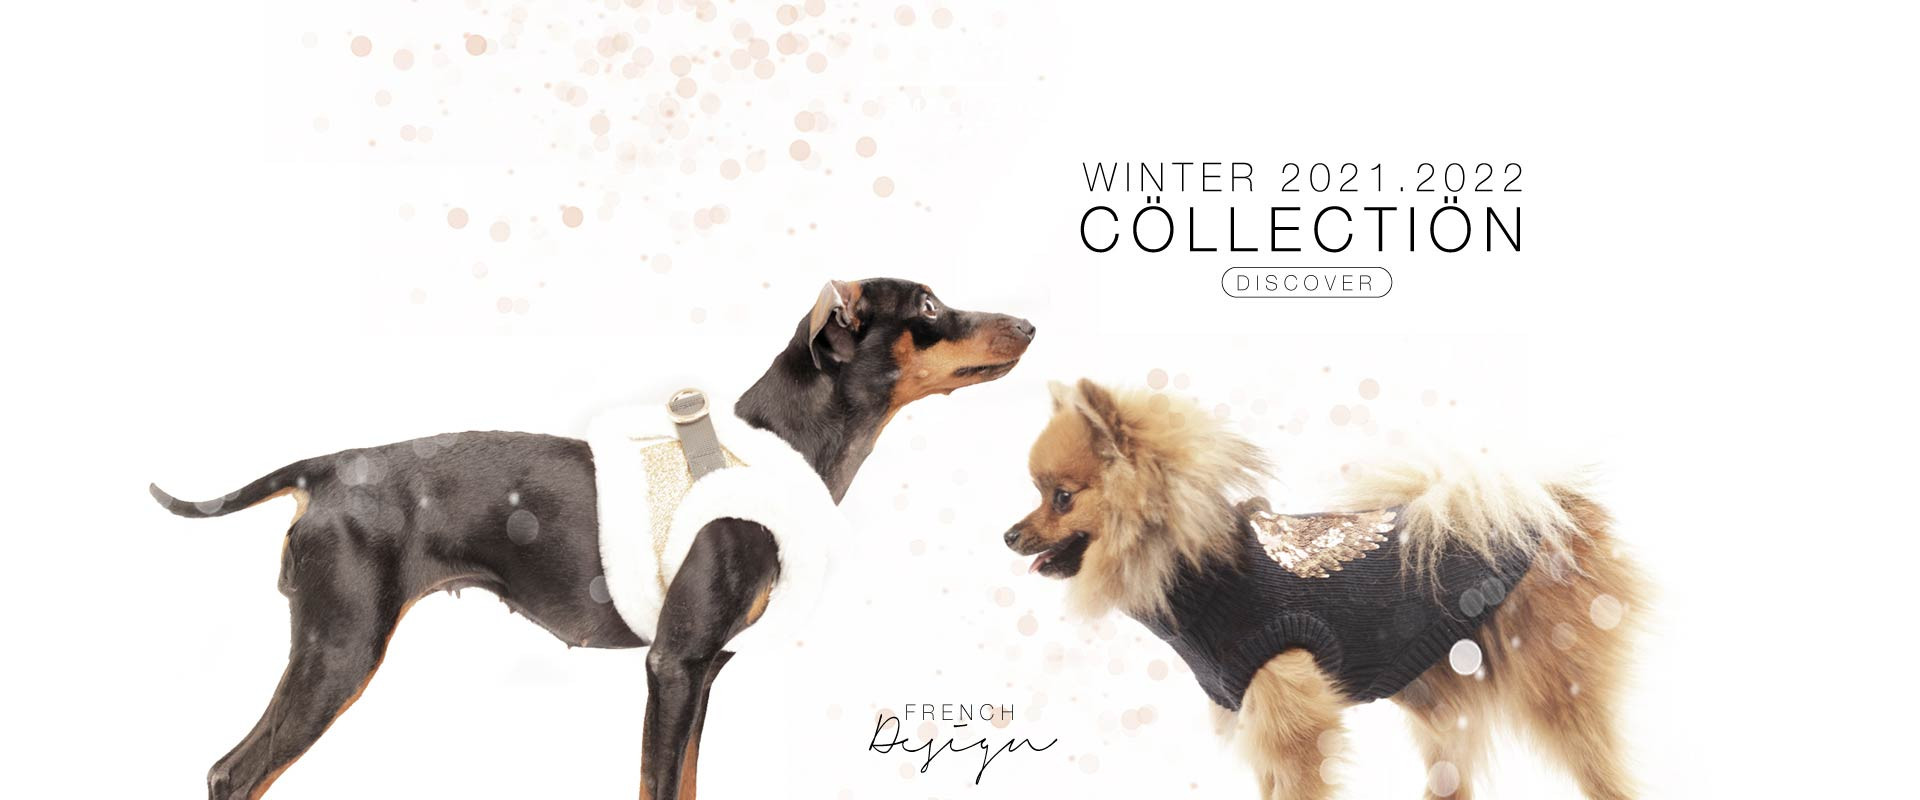 Milk & Pepper, Fashion And Accessories For Dogs & Cats - Fashion Winter 2021